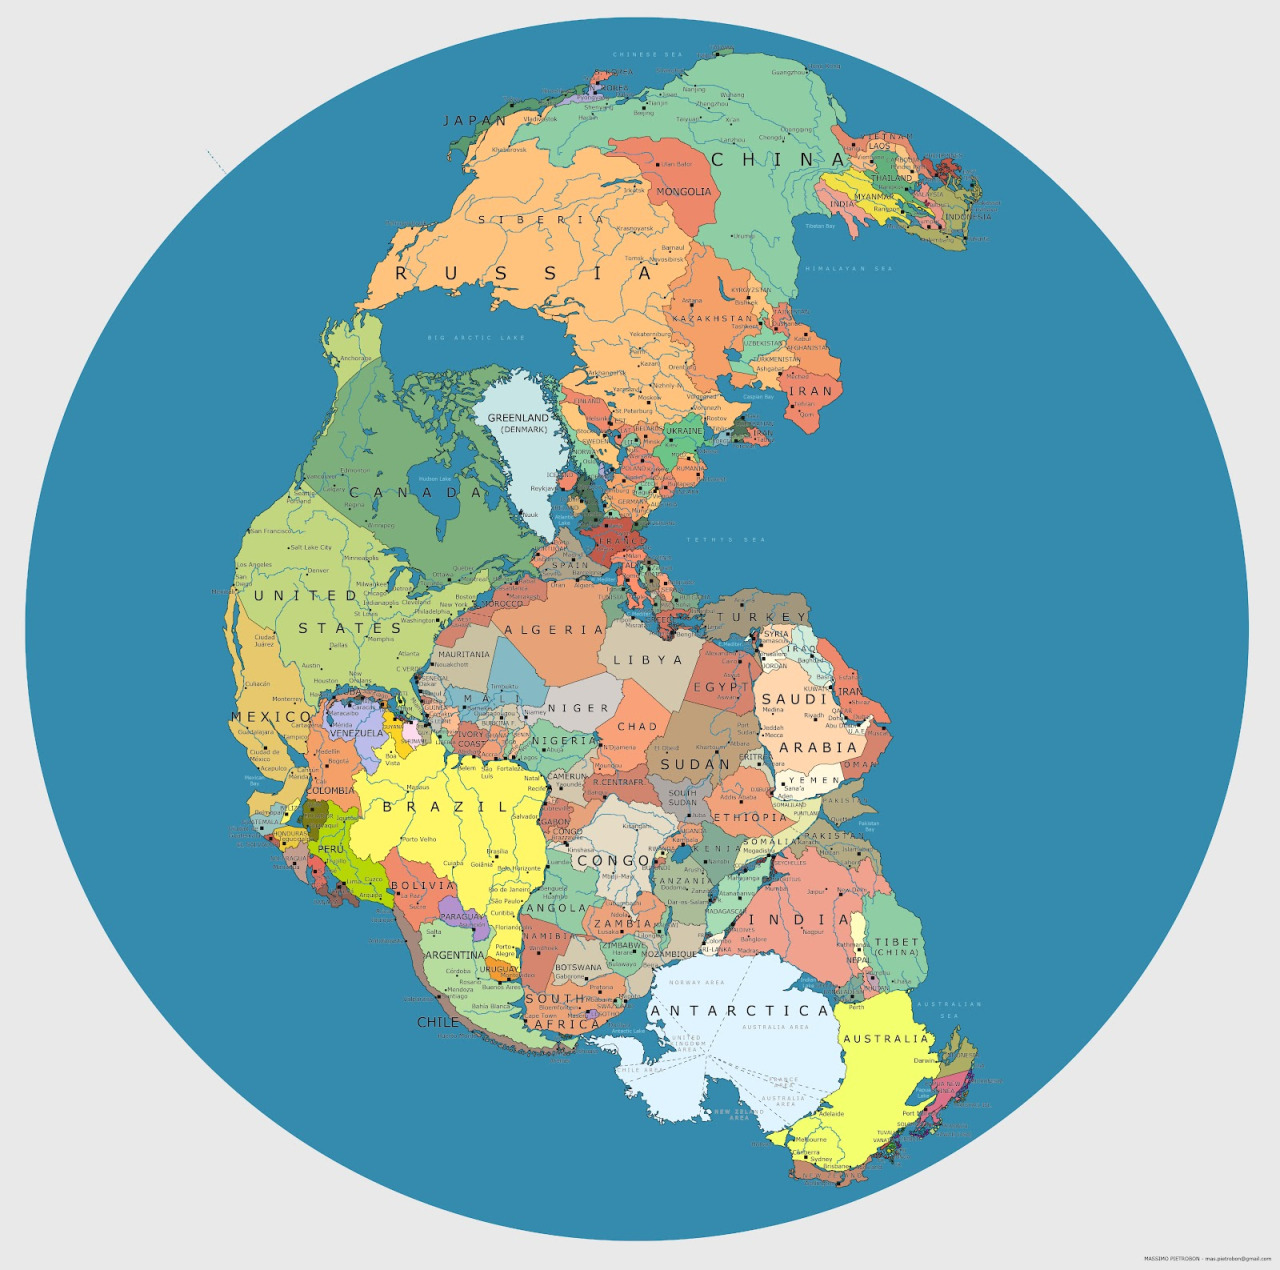 Political boundaries mapped onto Pangea           by  Massimo Pietrobon    http://capitan-mas-ideas.blogspot.com/2012/08/pangea-politica.html